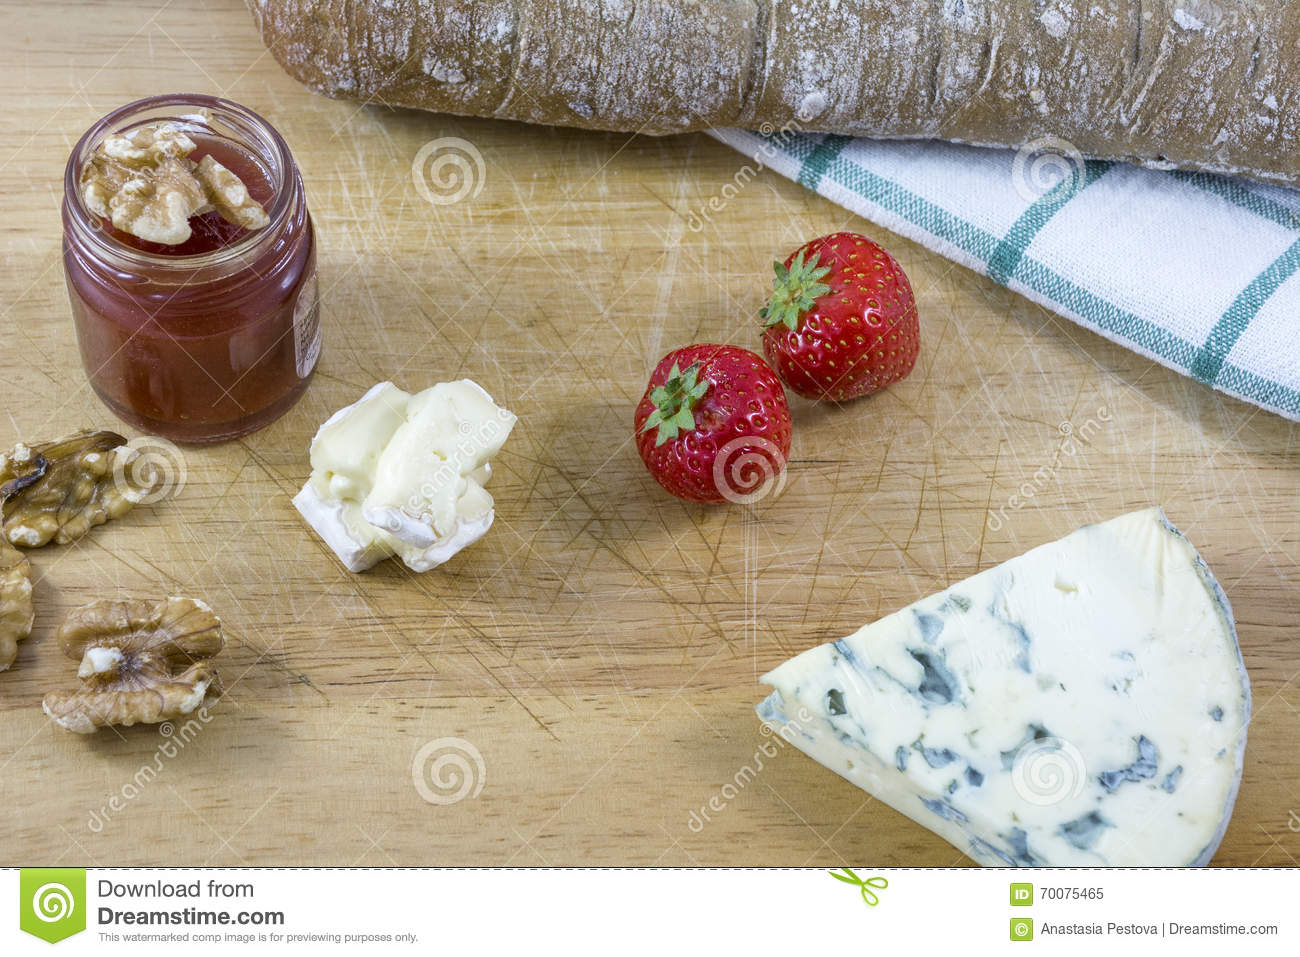 Palatable cheese roquefort and brie, bread, jam, nuts and strawberries as background